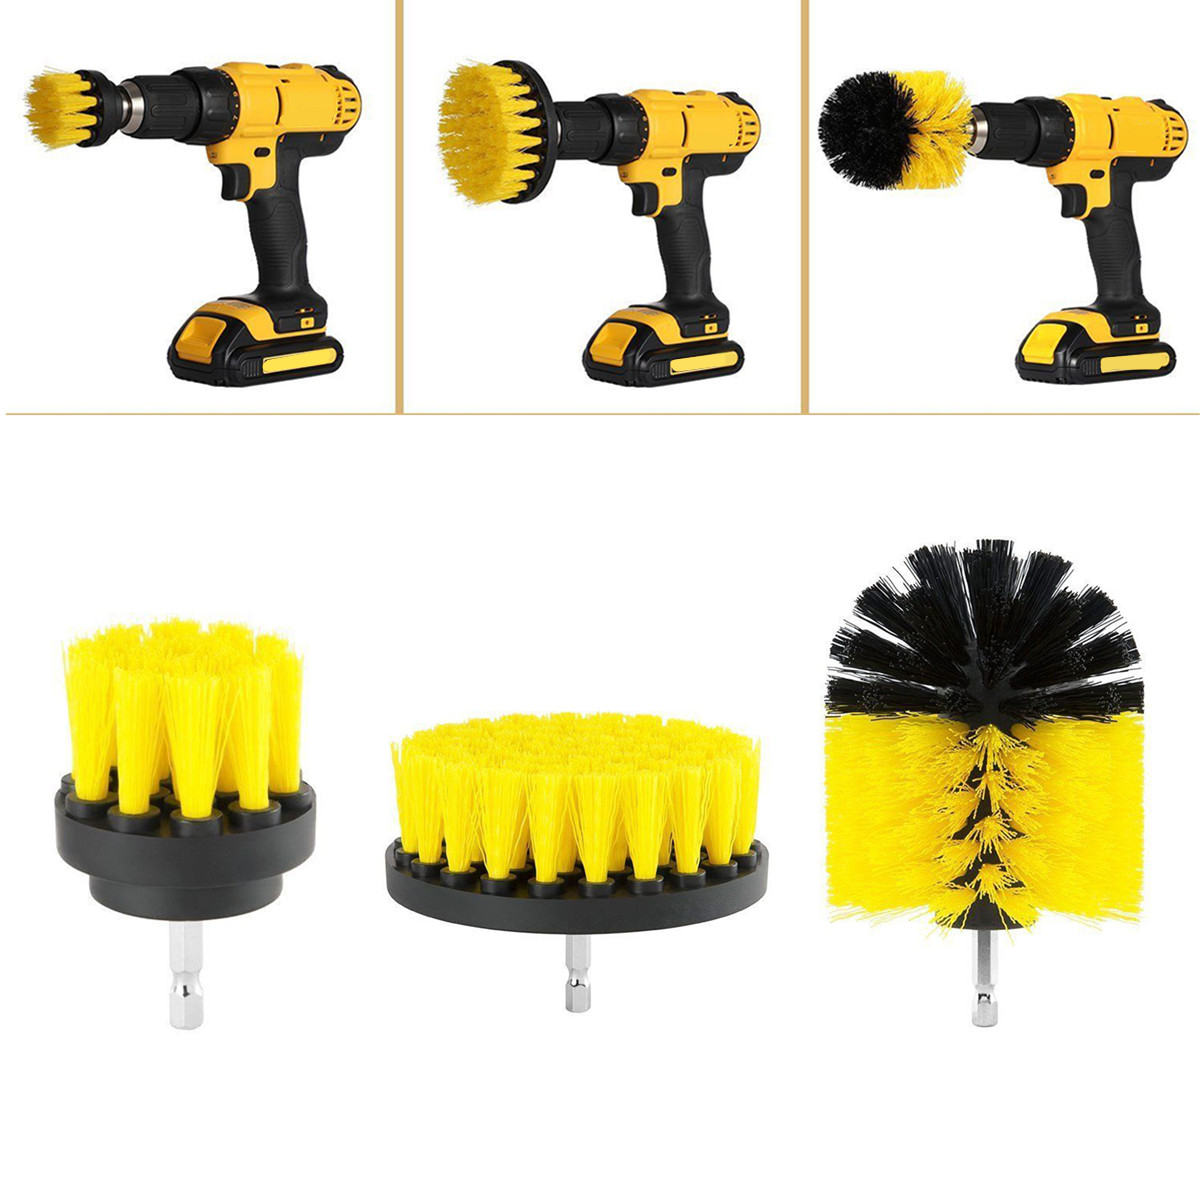 3pcs Eletric Drill Brush Tile Grout Power Scrubber Cleaning Tub Cleaner Combo Tool For Power Tools